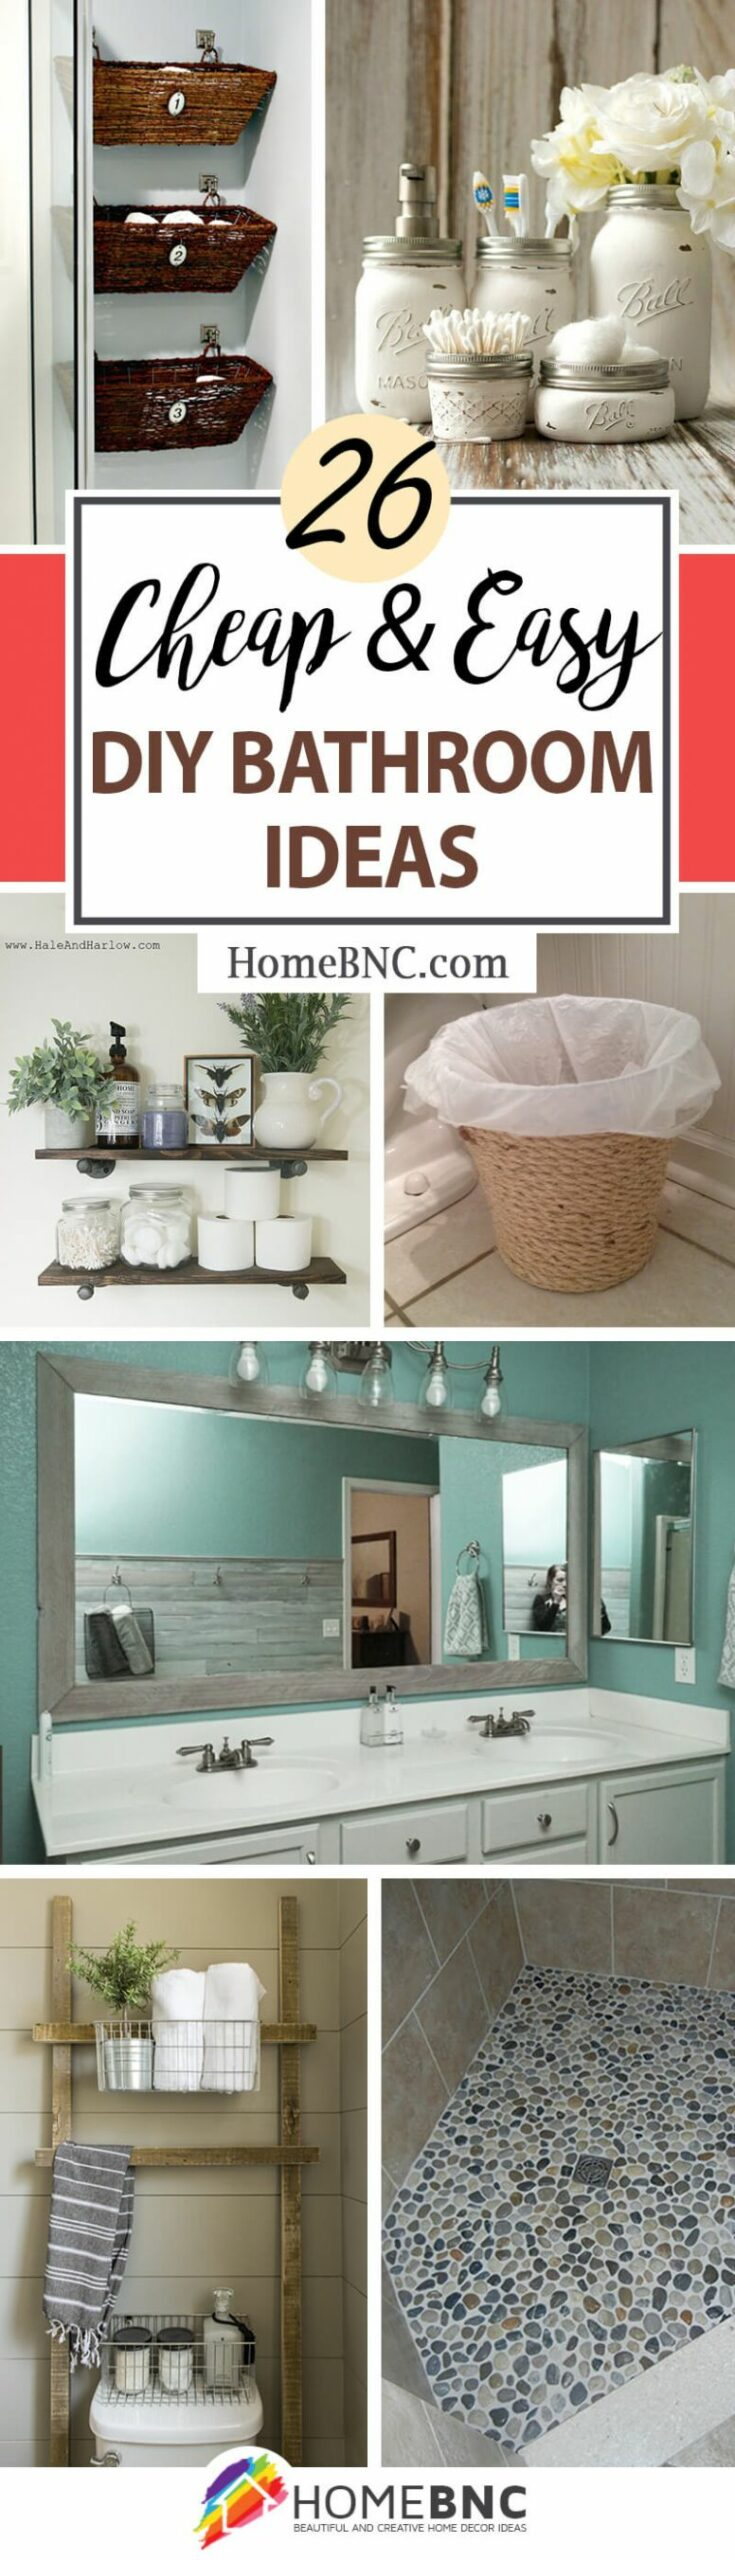 11 Best DIY Bathroom Ideas and Designs for 11 - bathroom ideas cheap